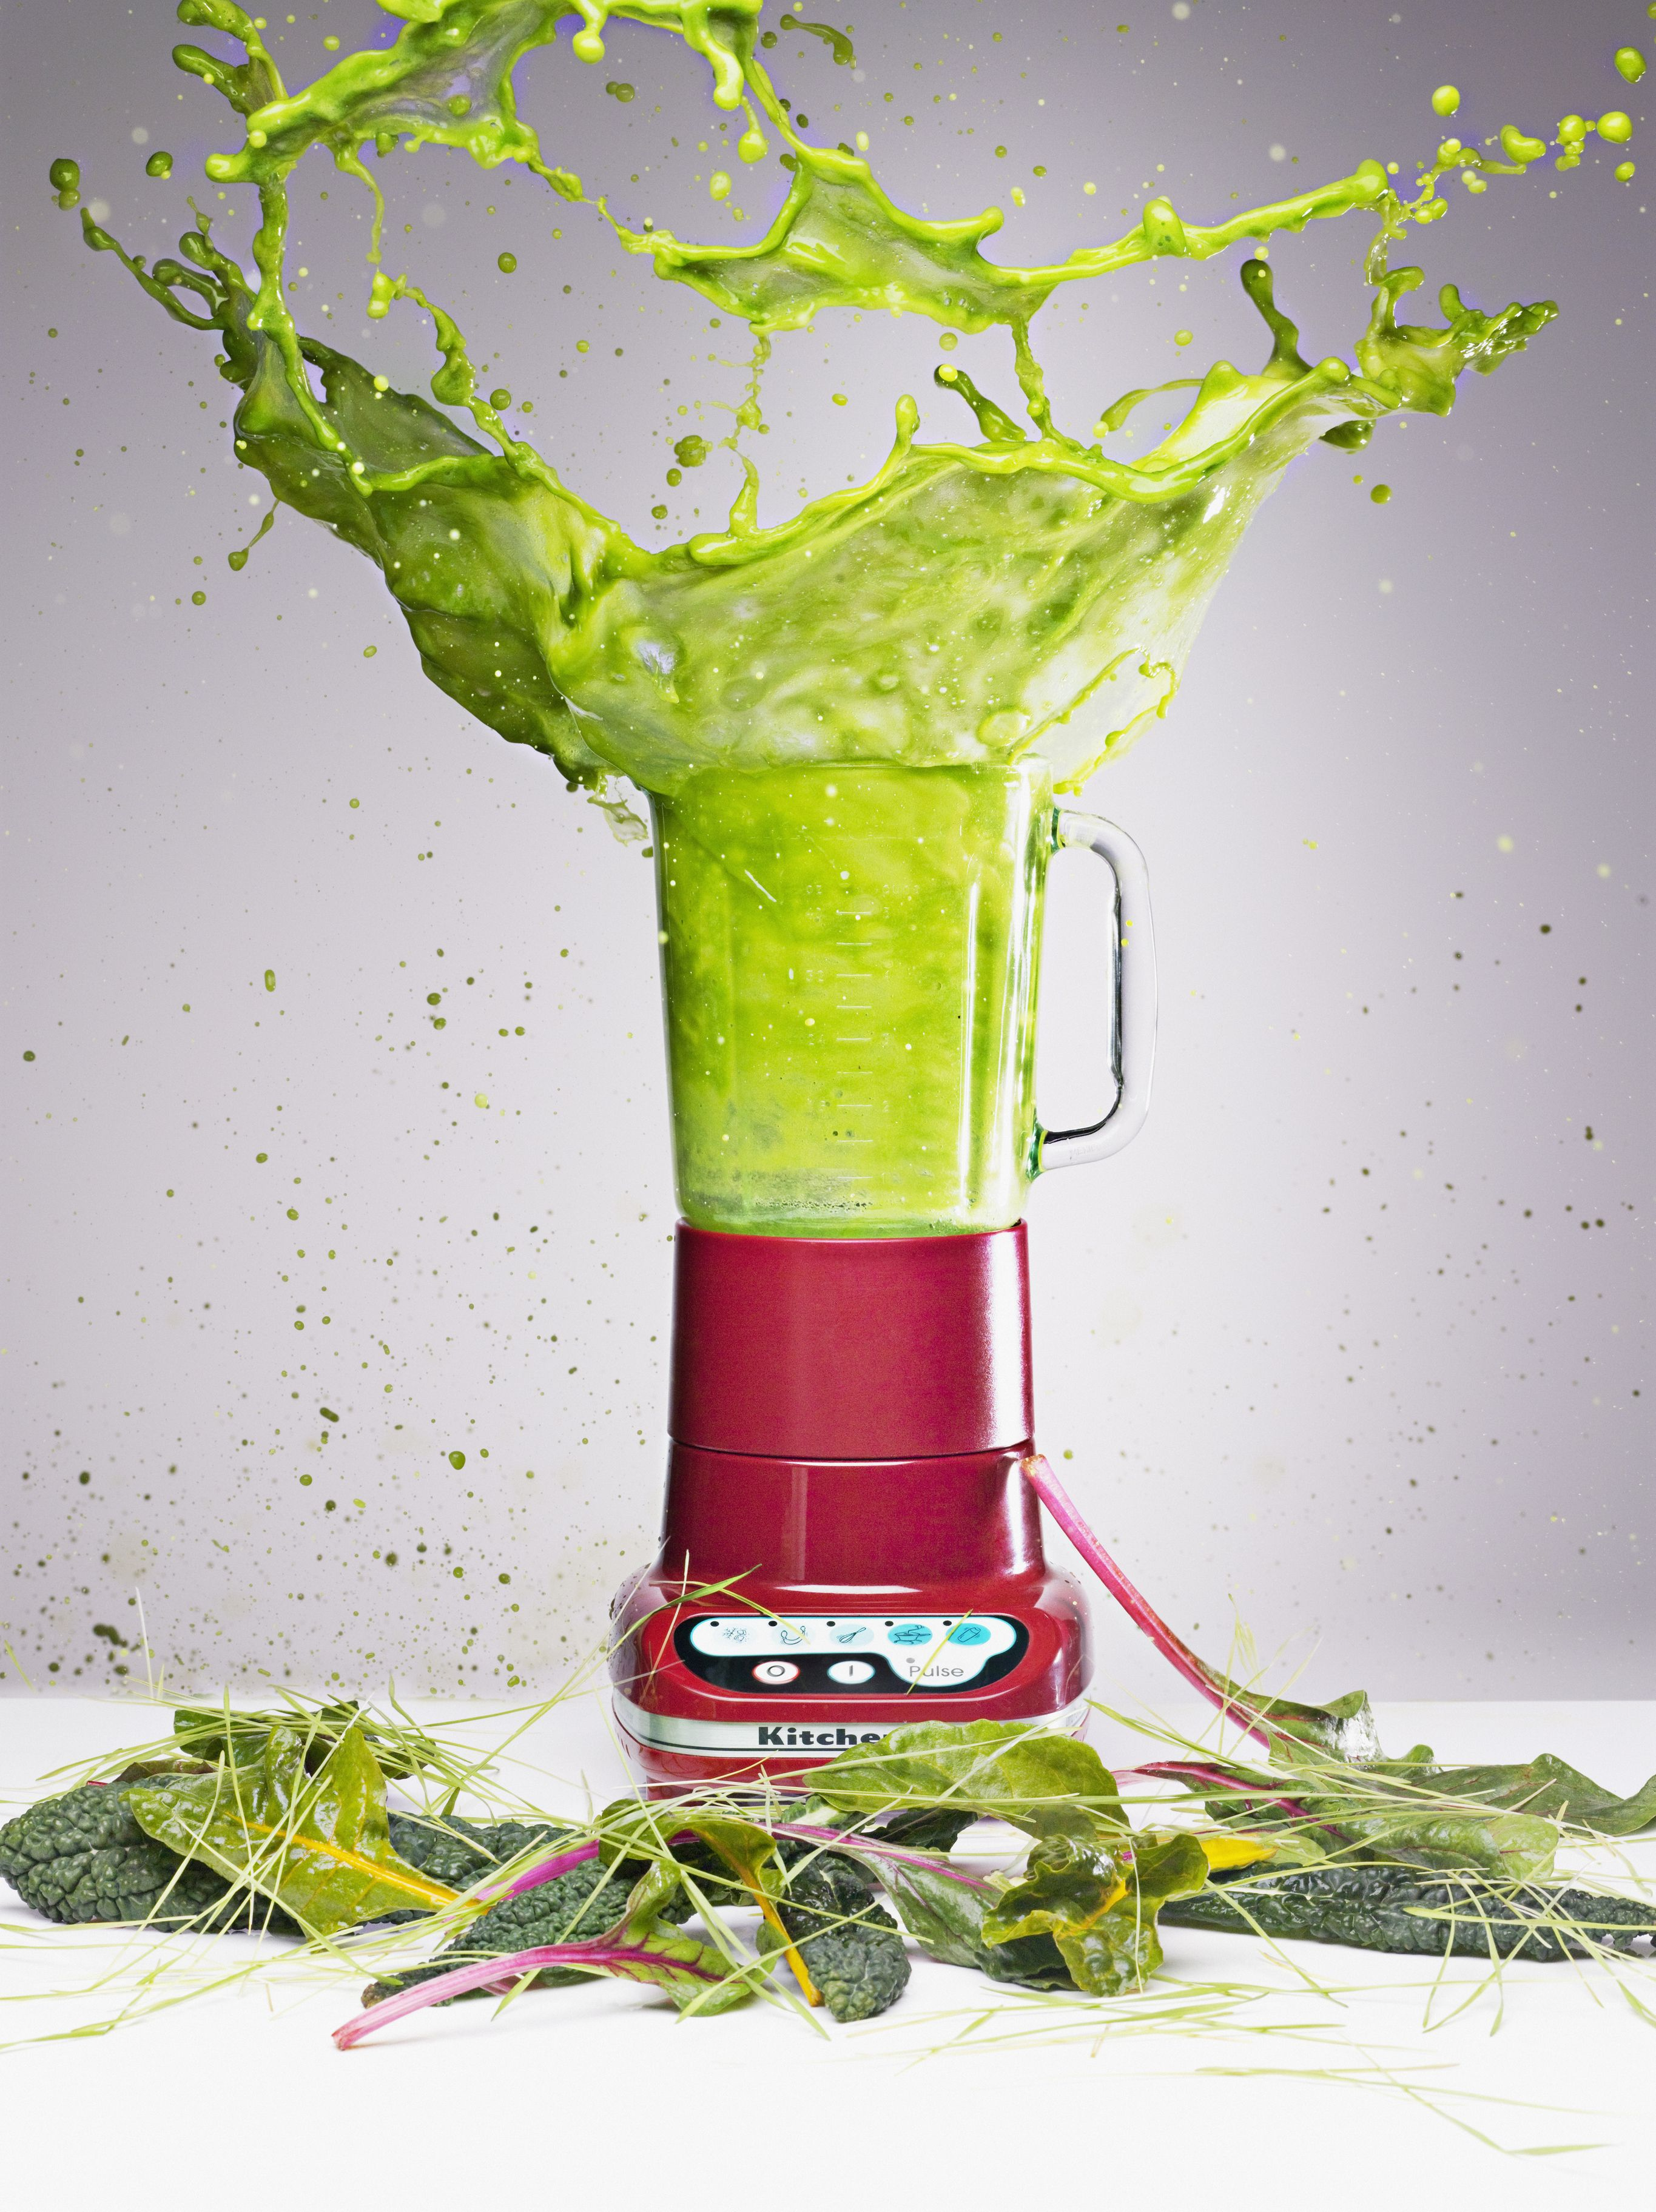 Do Detox Diets Work, or Are They a Complete Waste of Time?